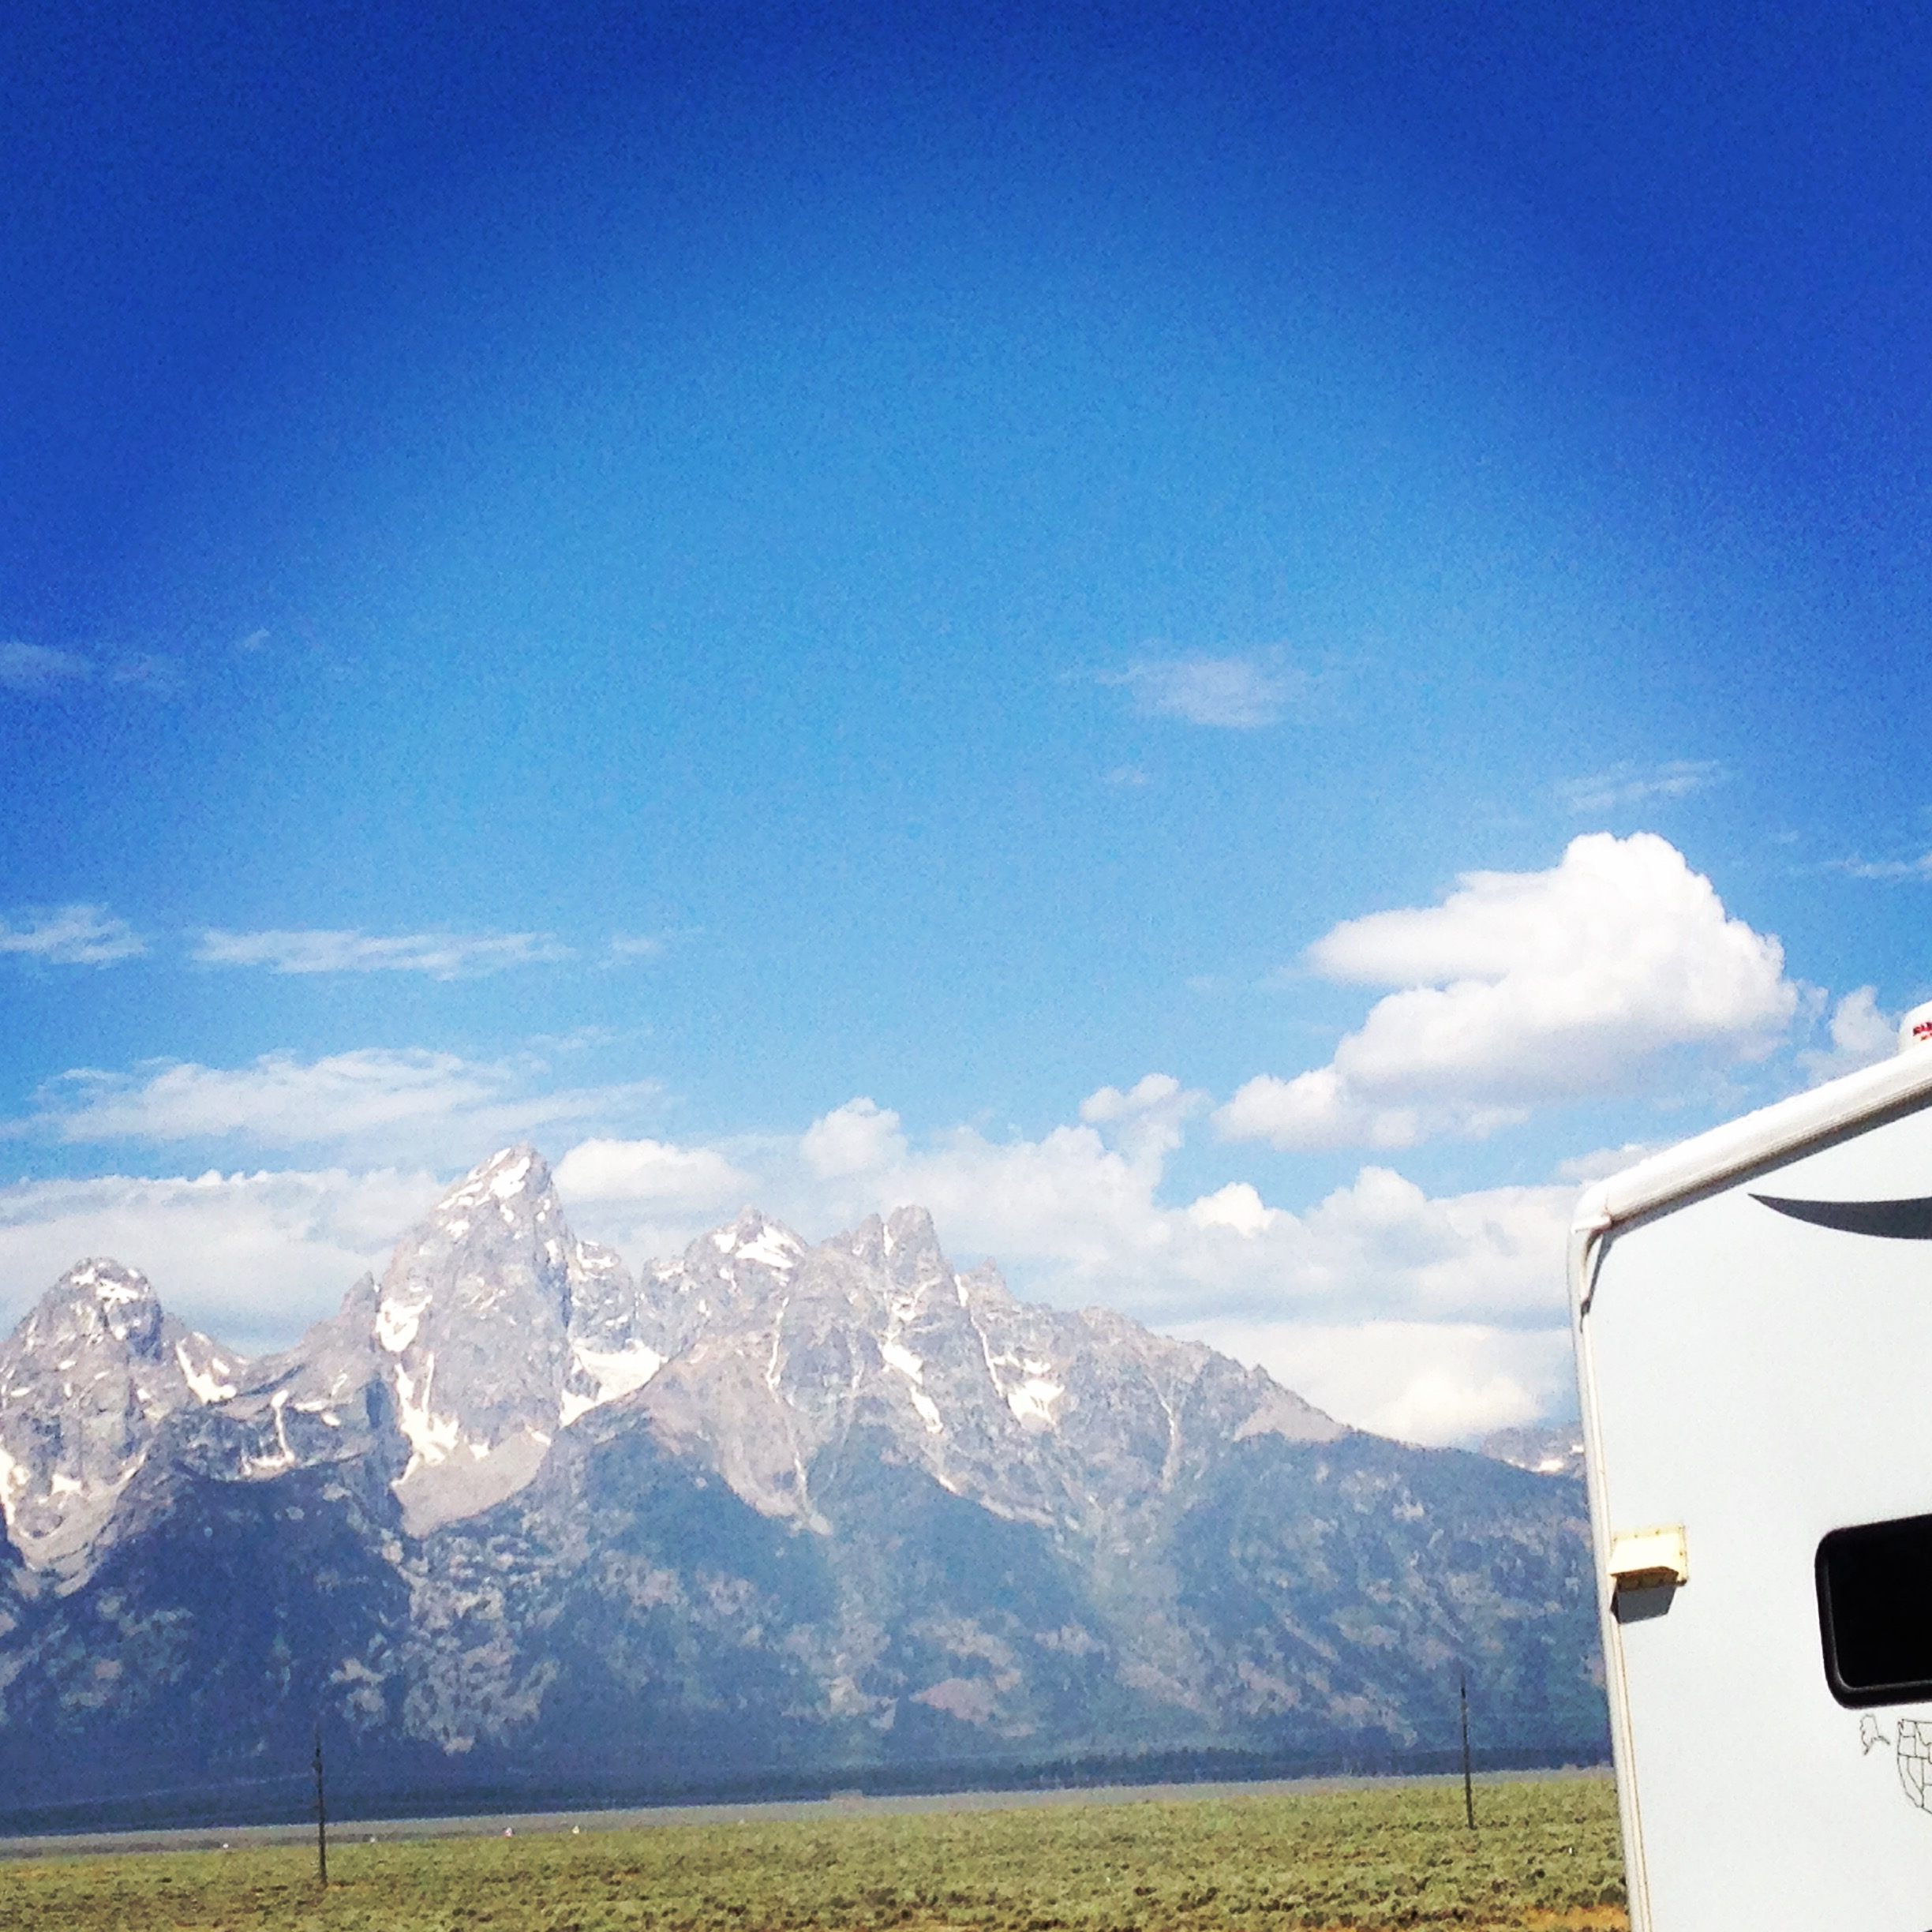 the Teton Range. That big beautiful teton in the middle is the Grand Teton. Tops out at 11.5k ft. i wanna climb it! Weather and the death of an Exum guide kinda put a damper.